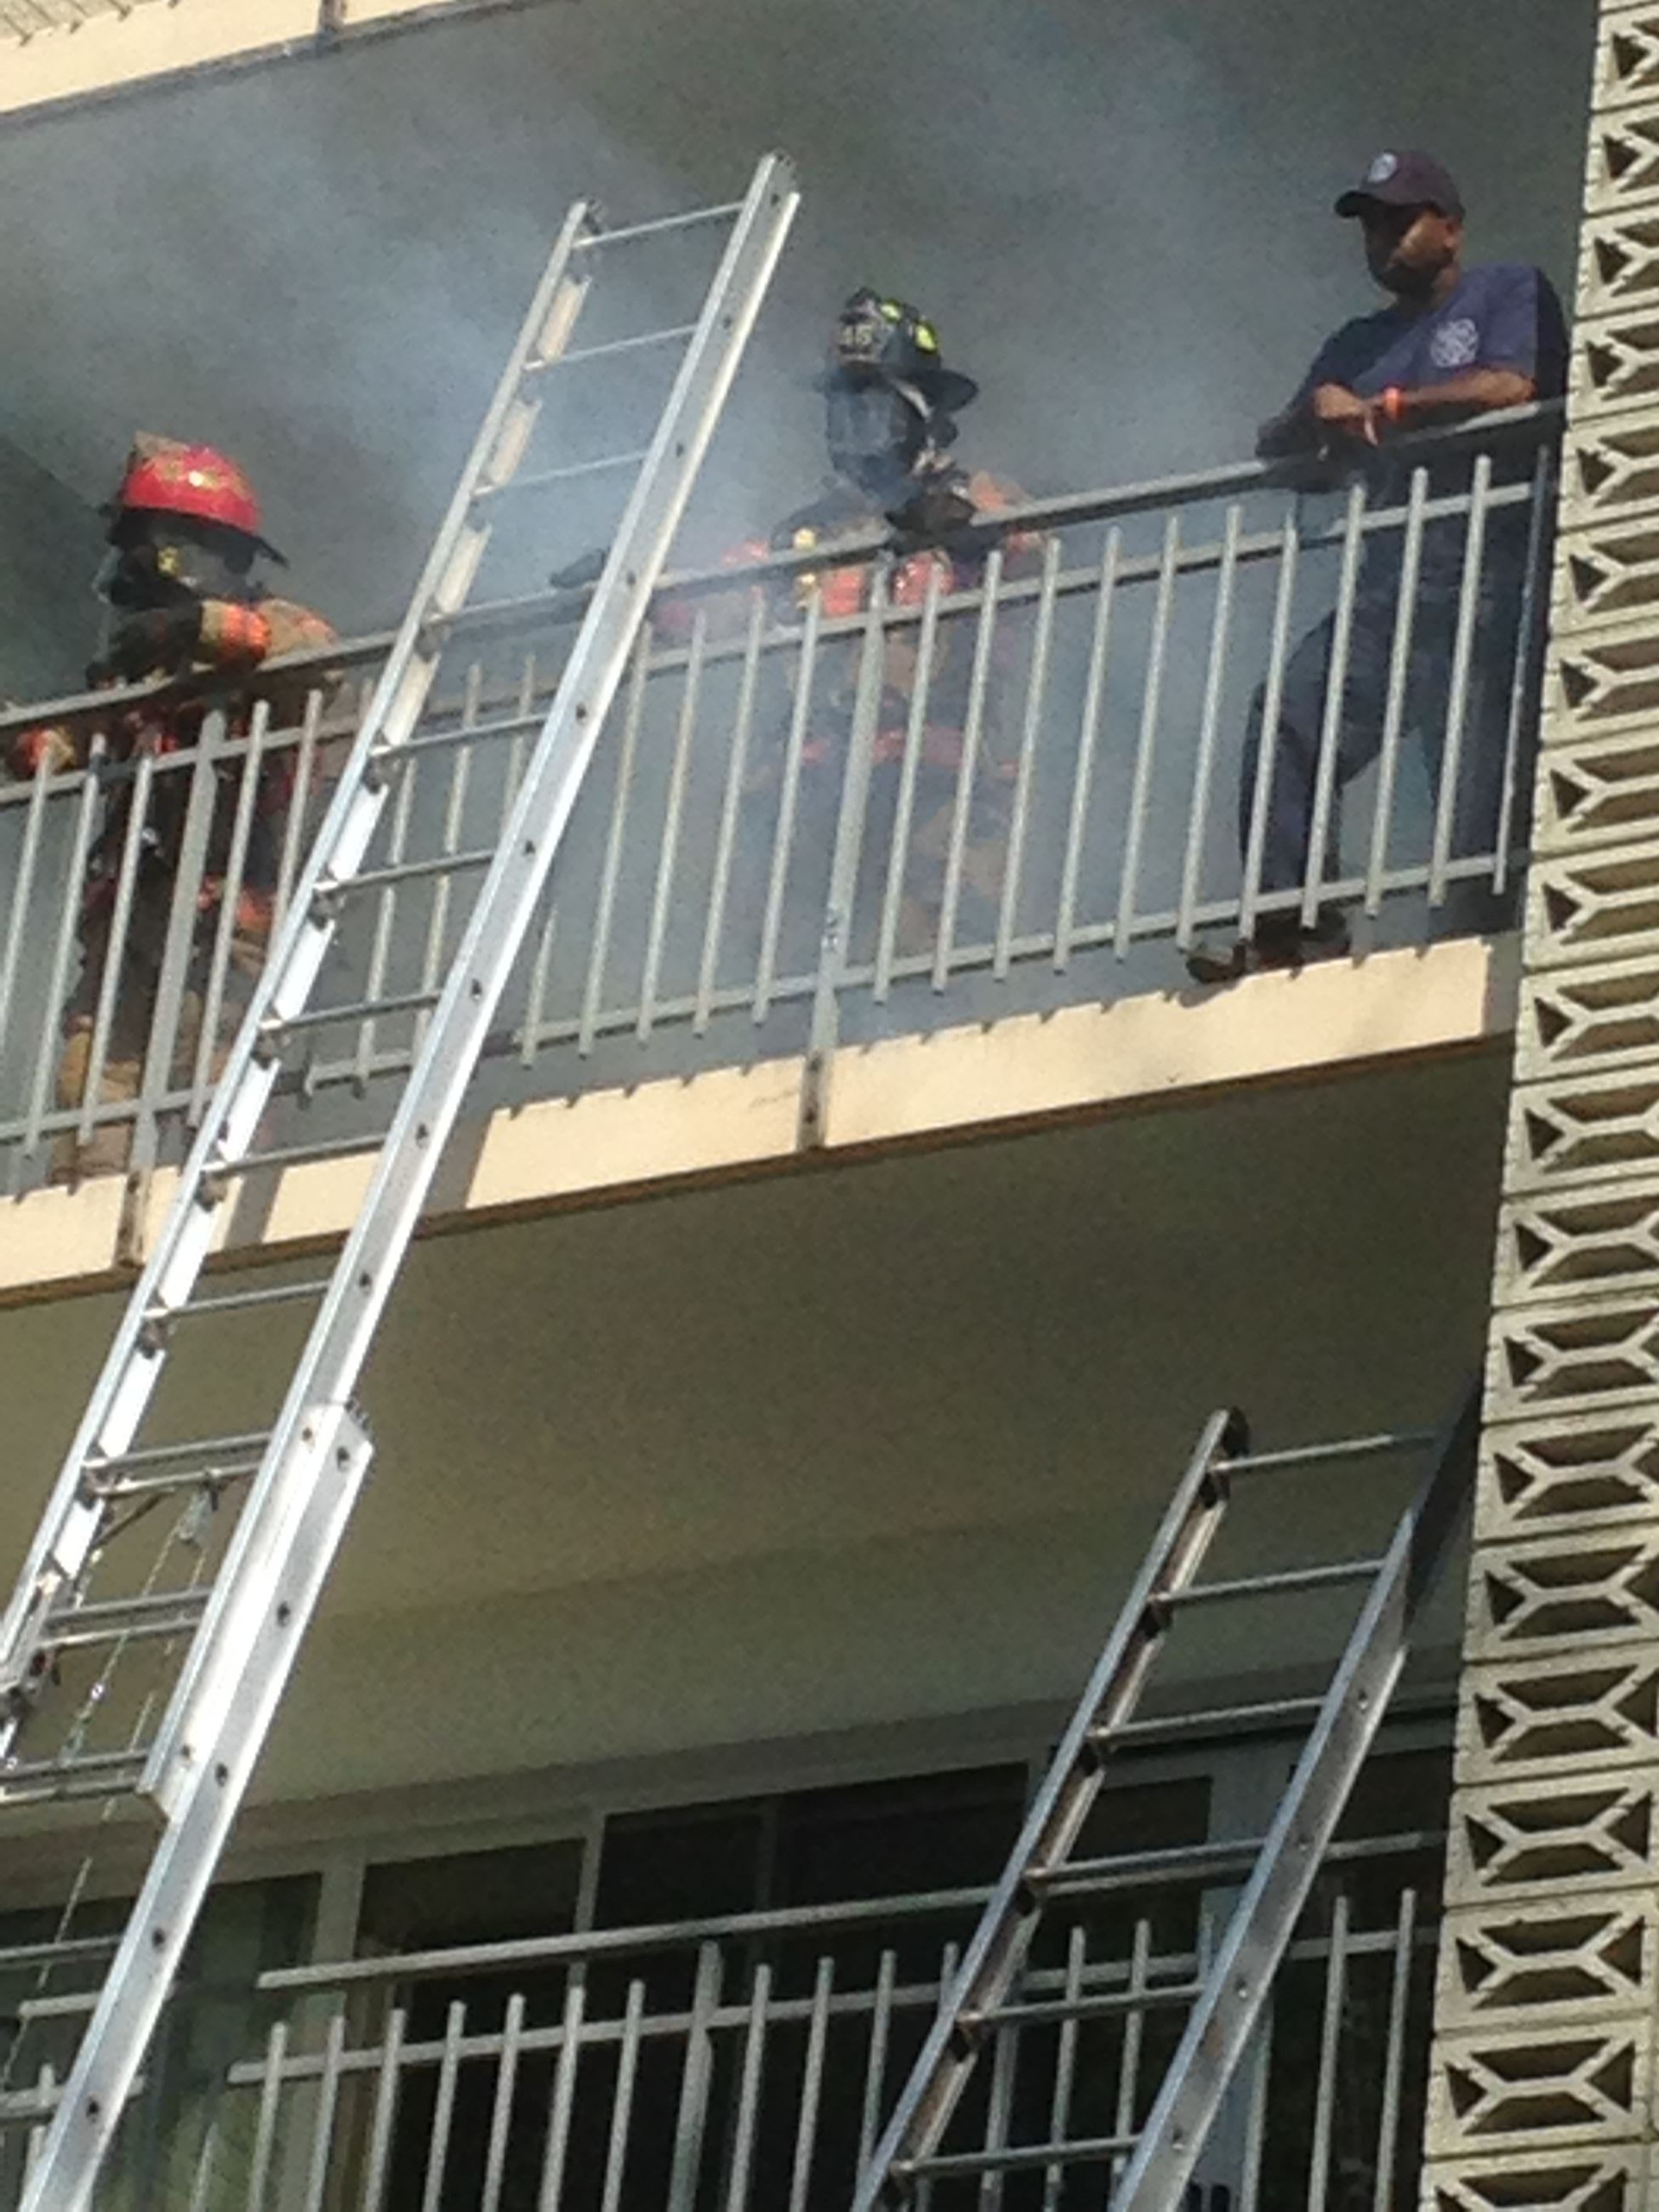 Three fire fighters standing on the second story porch of a building with smoke coming out behind them.